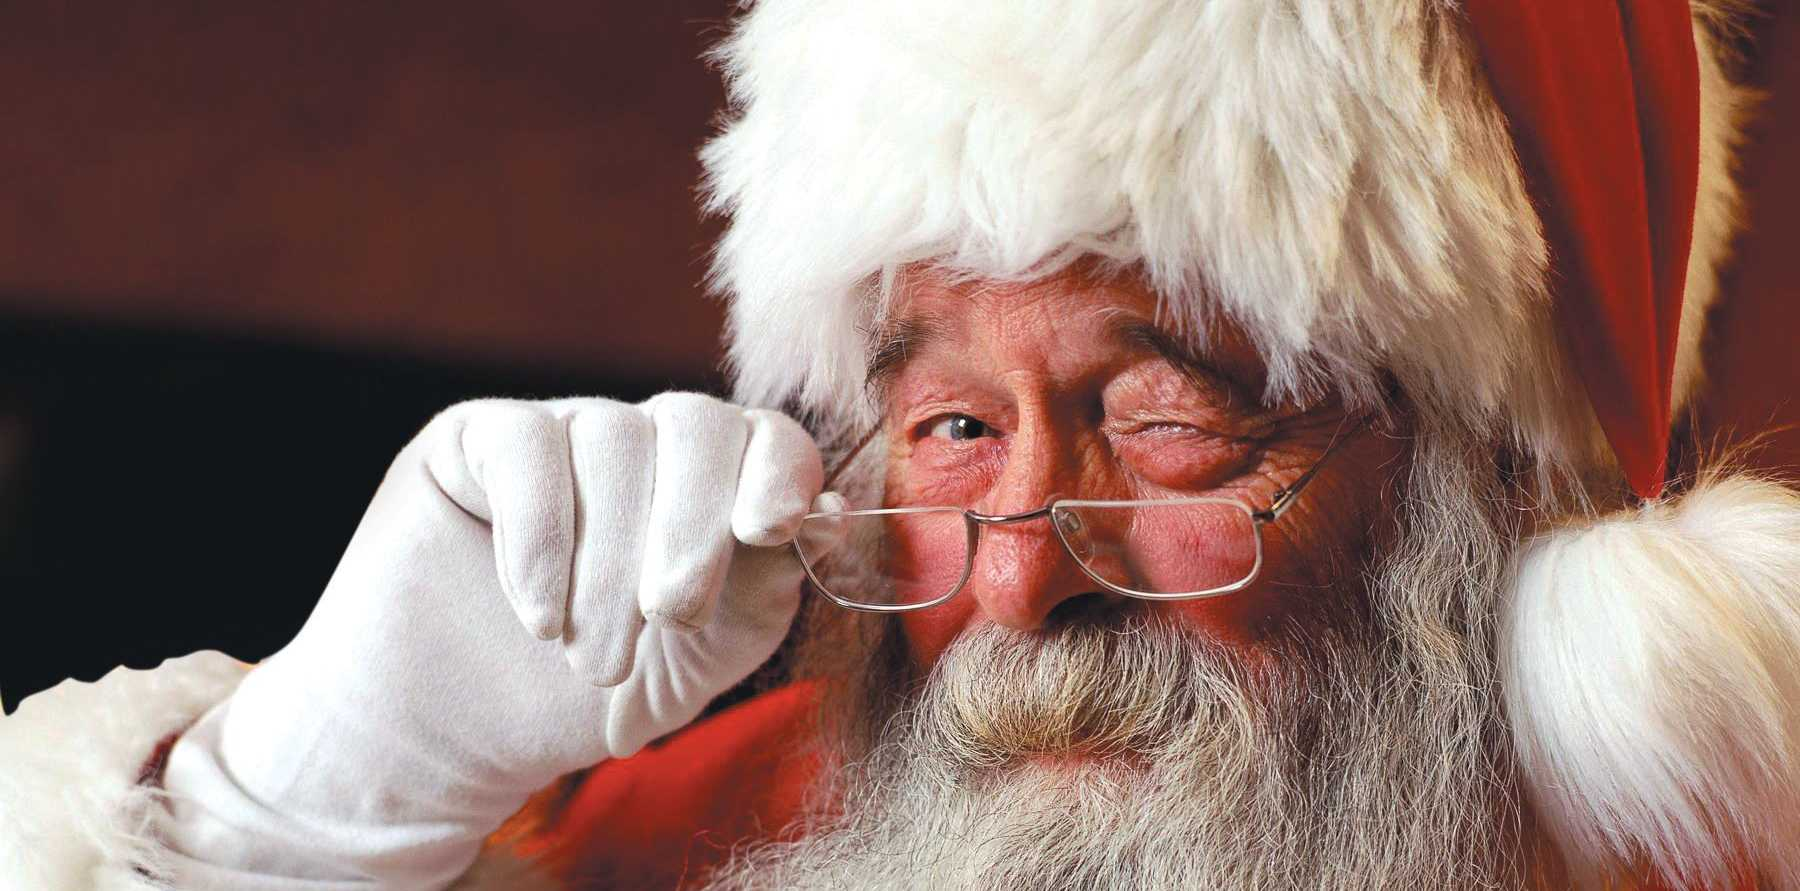 Coffs Harbour is attempting to set a world record for the most dancing Santas at a music festival.